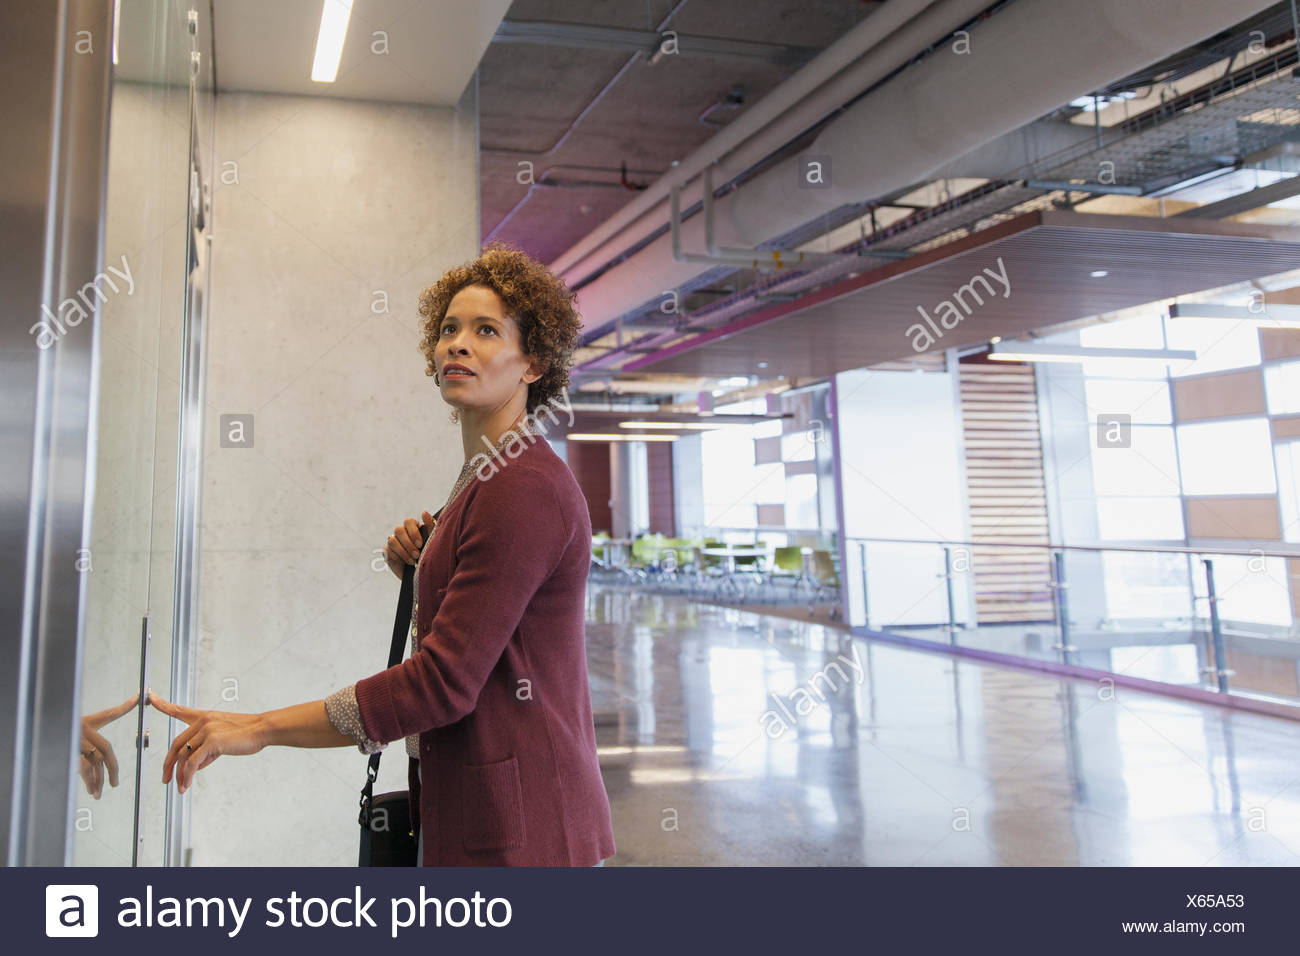 Woman pushing button on elevator at office. - Stock Image